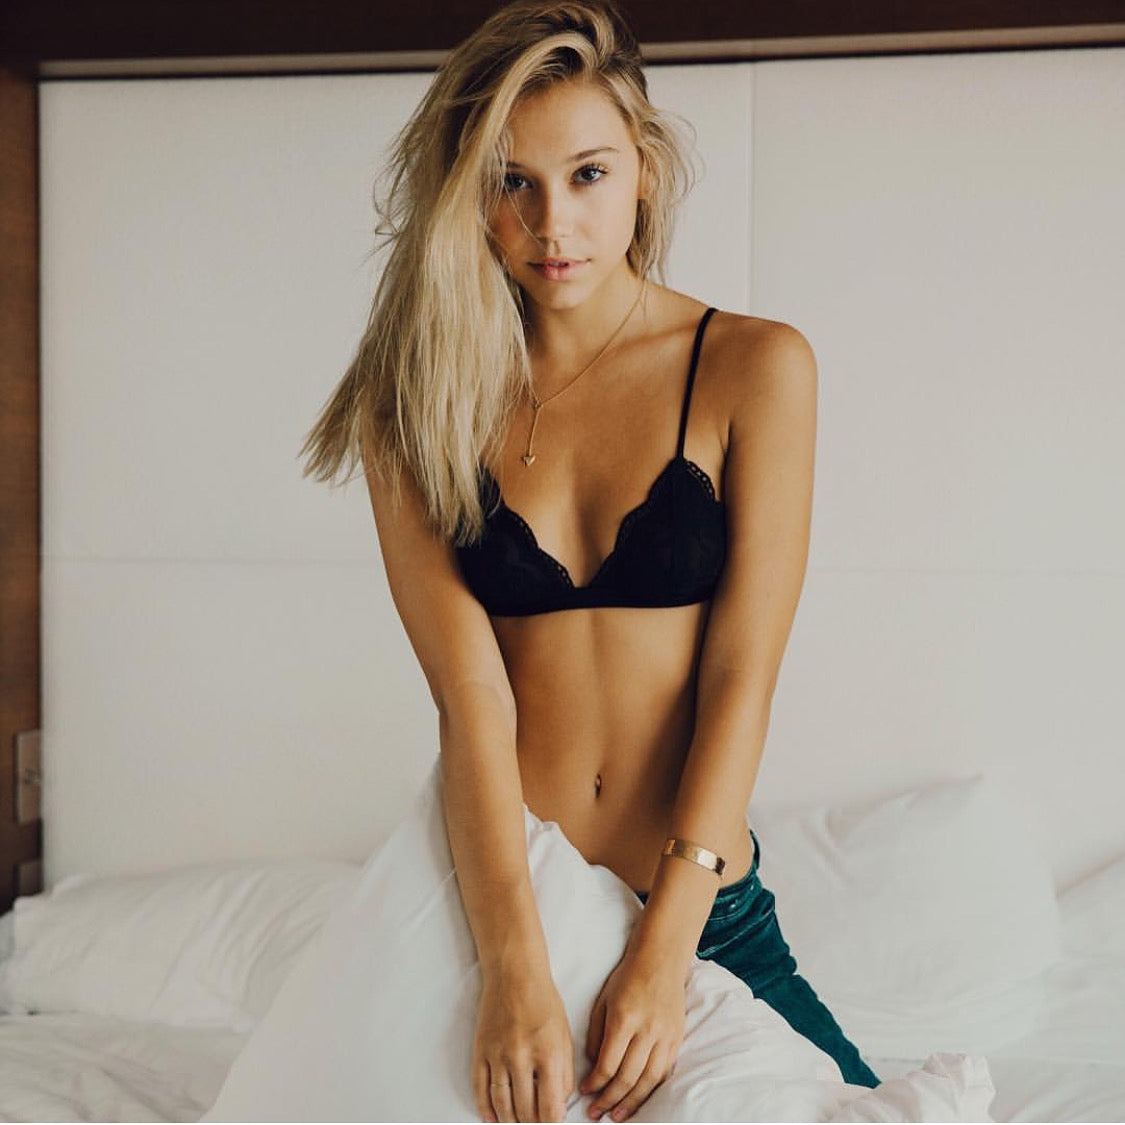 #Longlostloves/alexisren